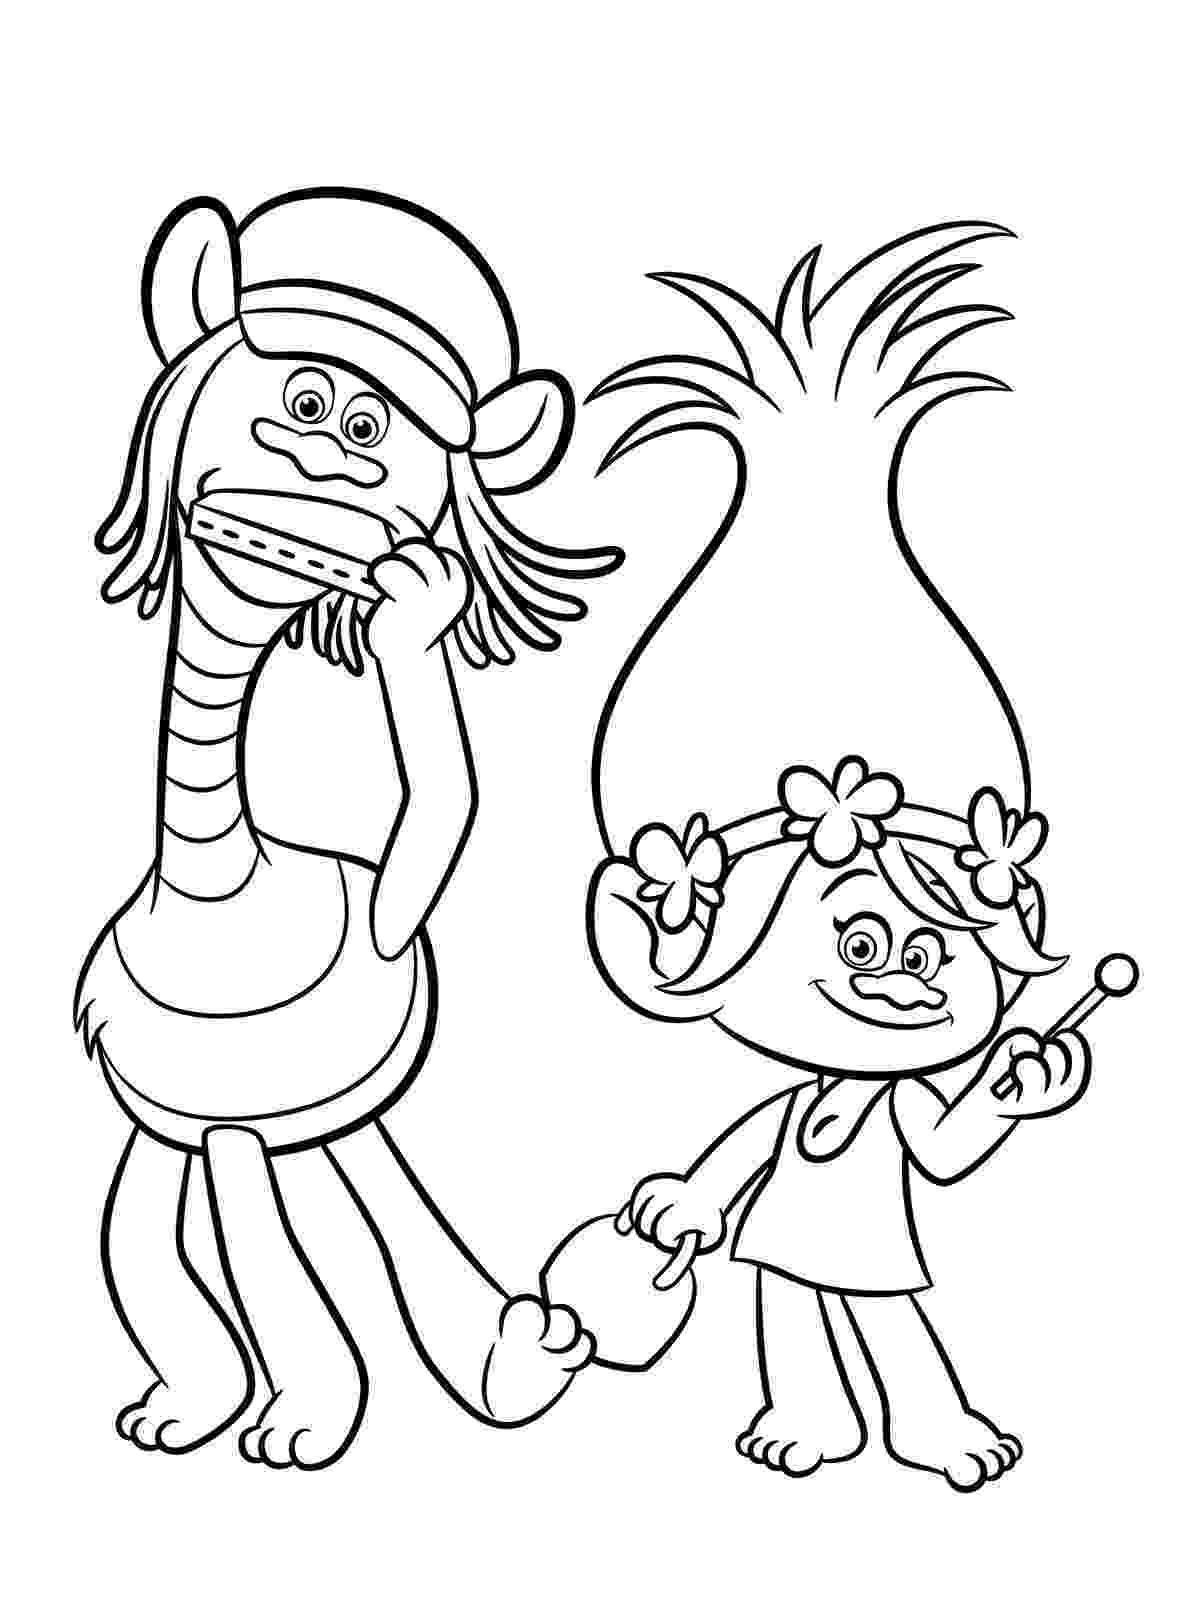 popular coloring pages free printable emo coloring pages for kids best coloring popular pages coloring